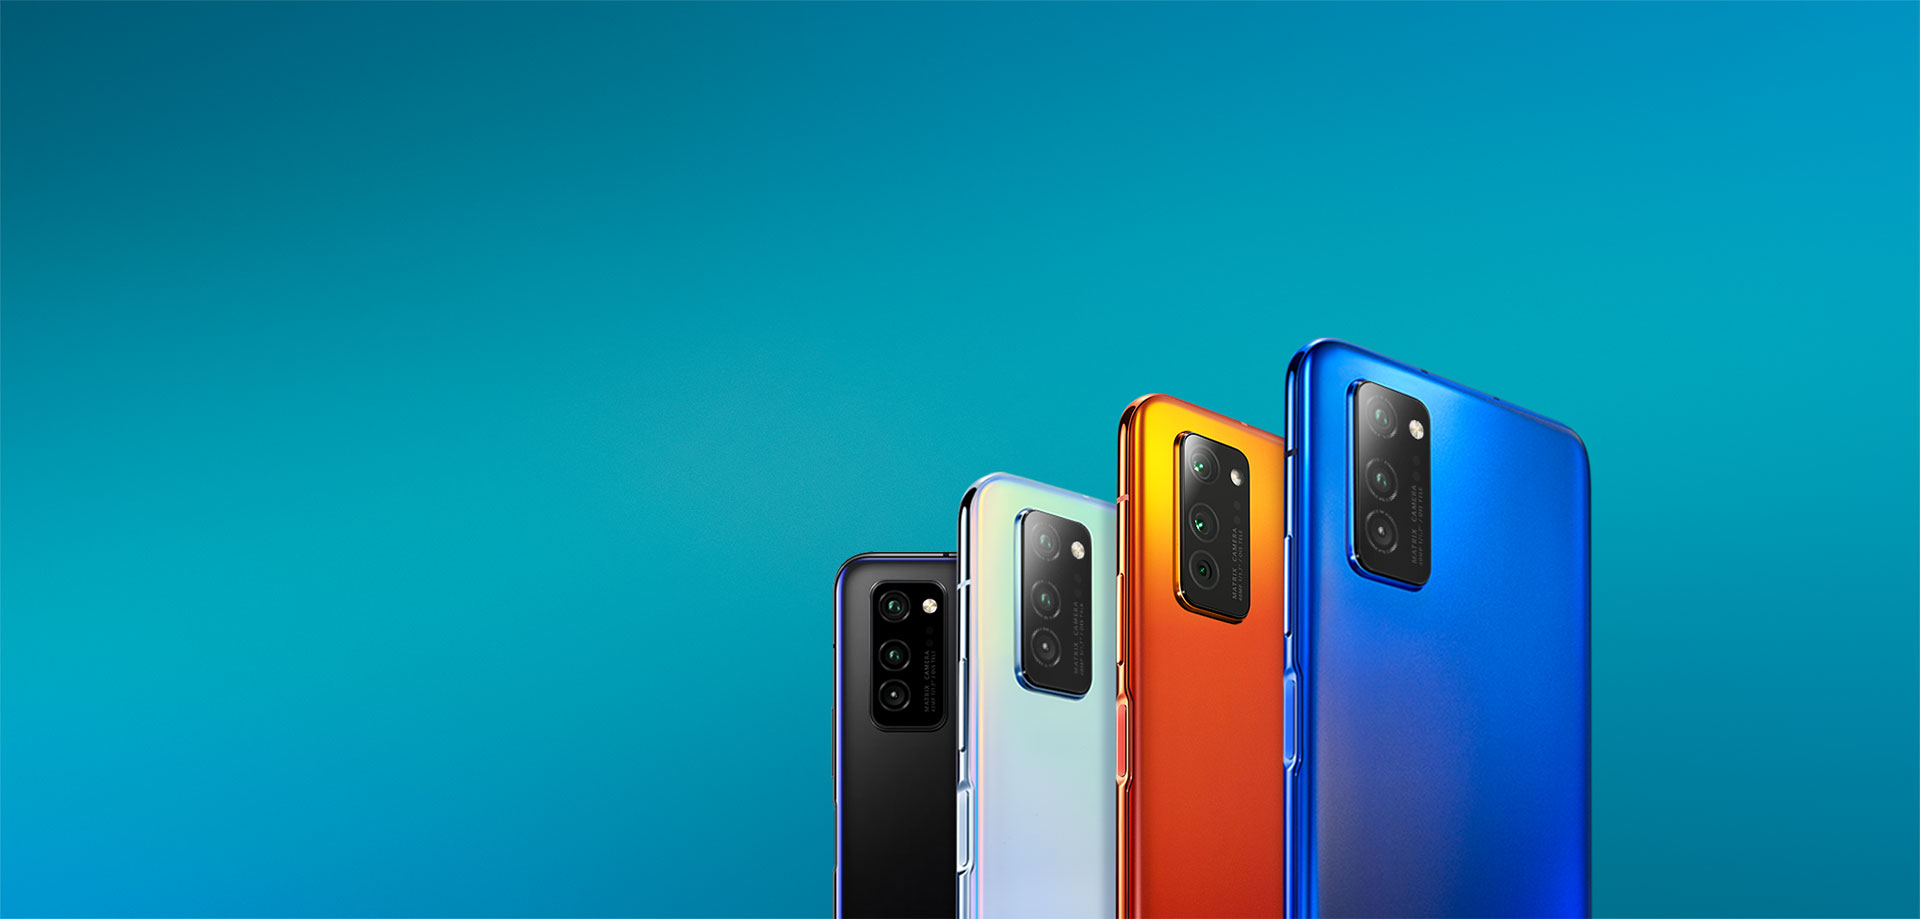 Honor View 30 Pro 5G Smartphone